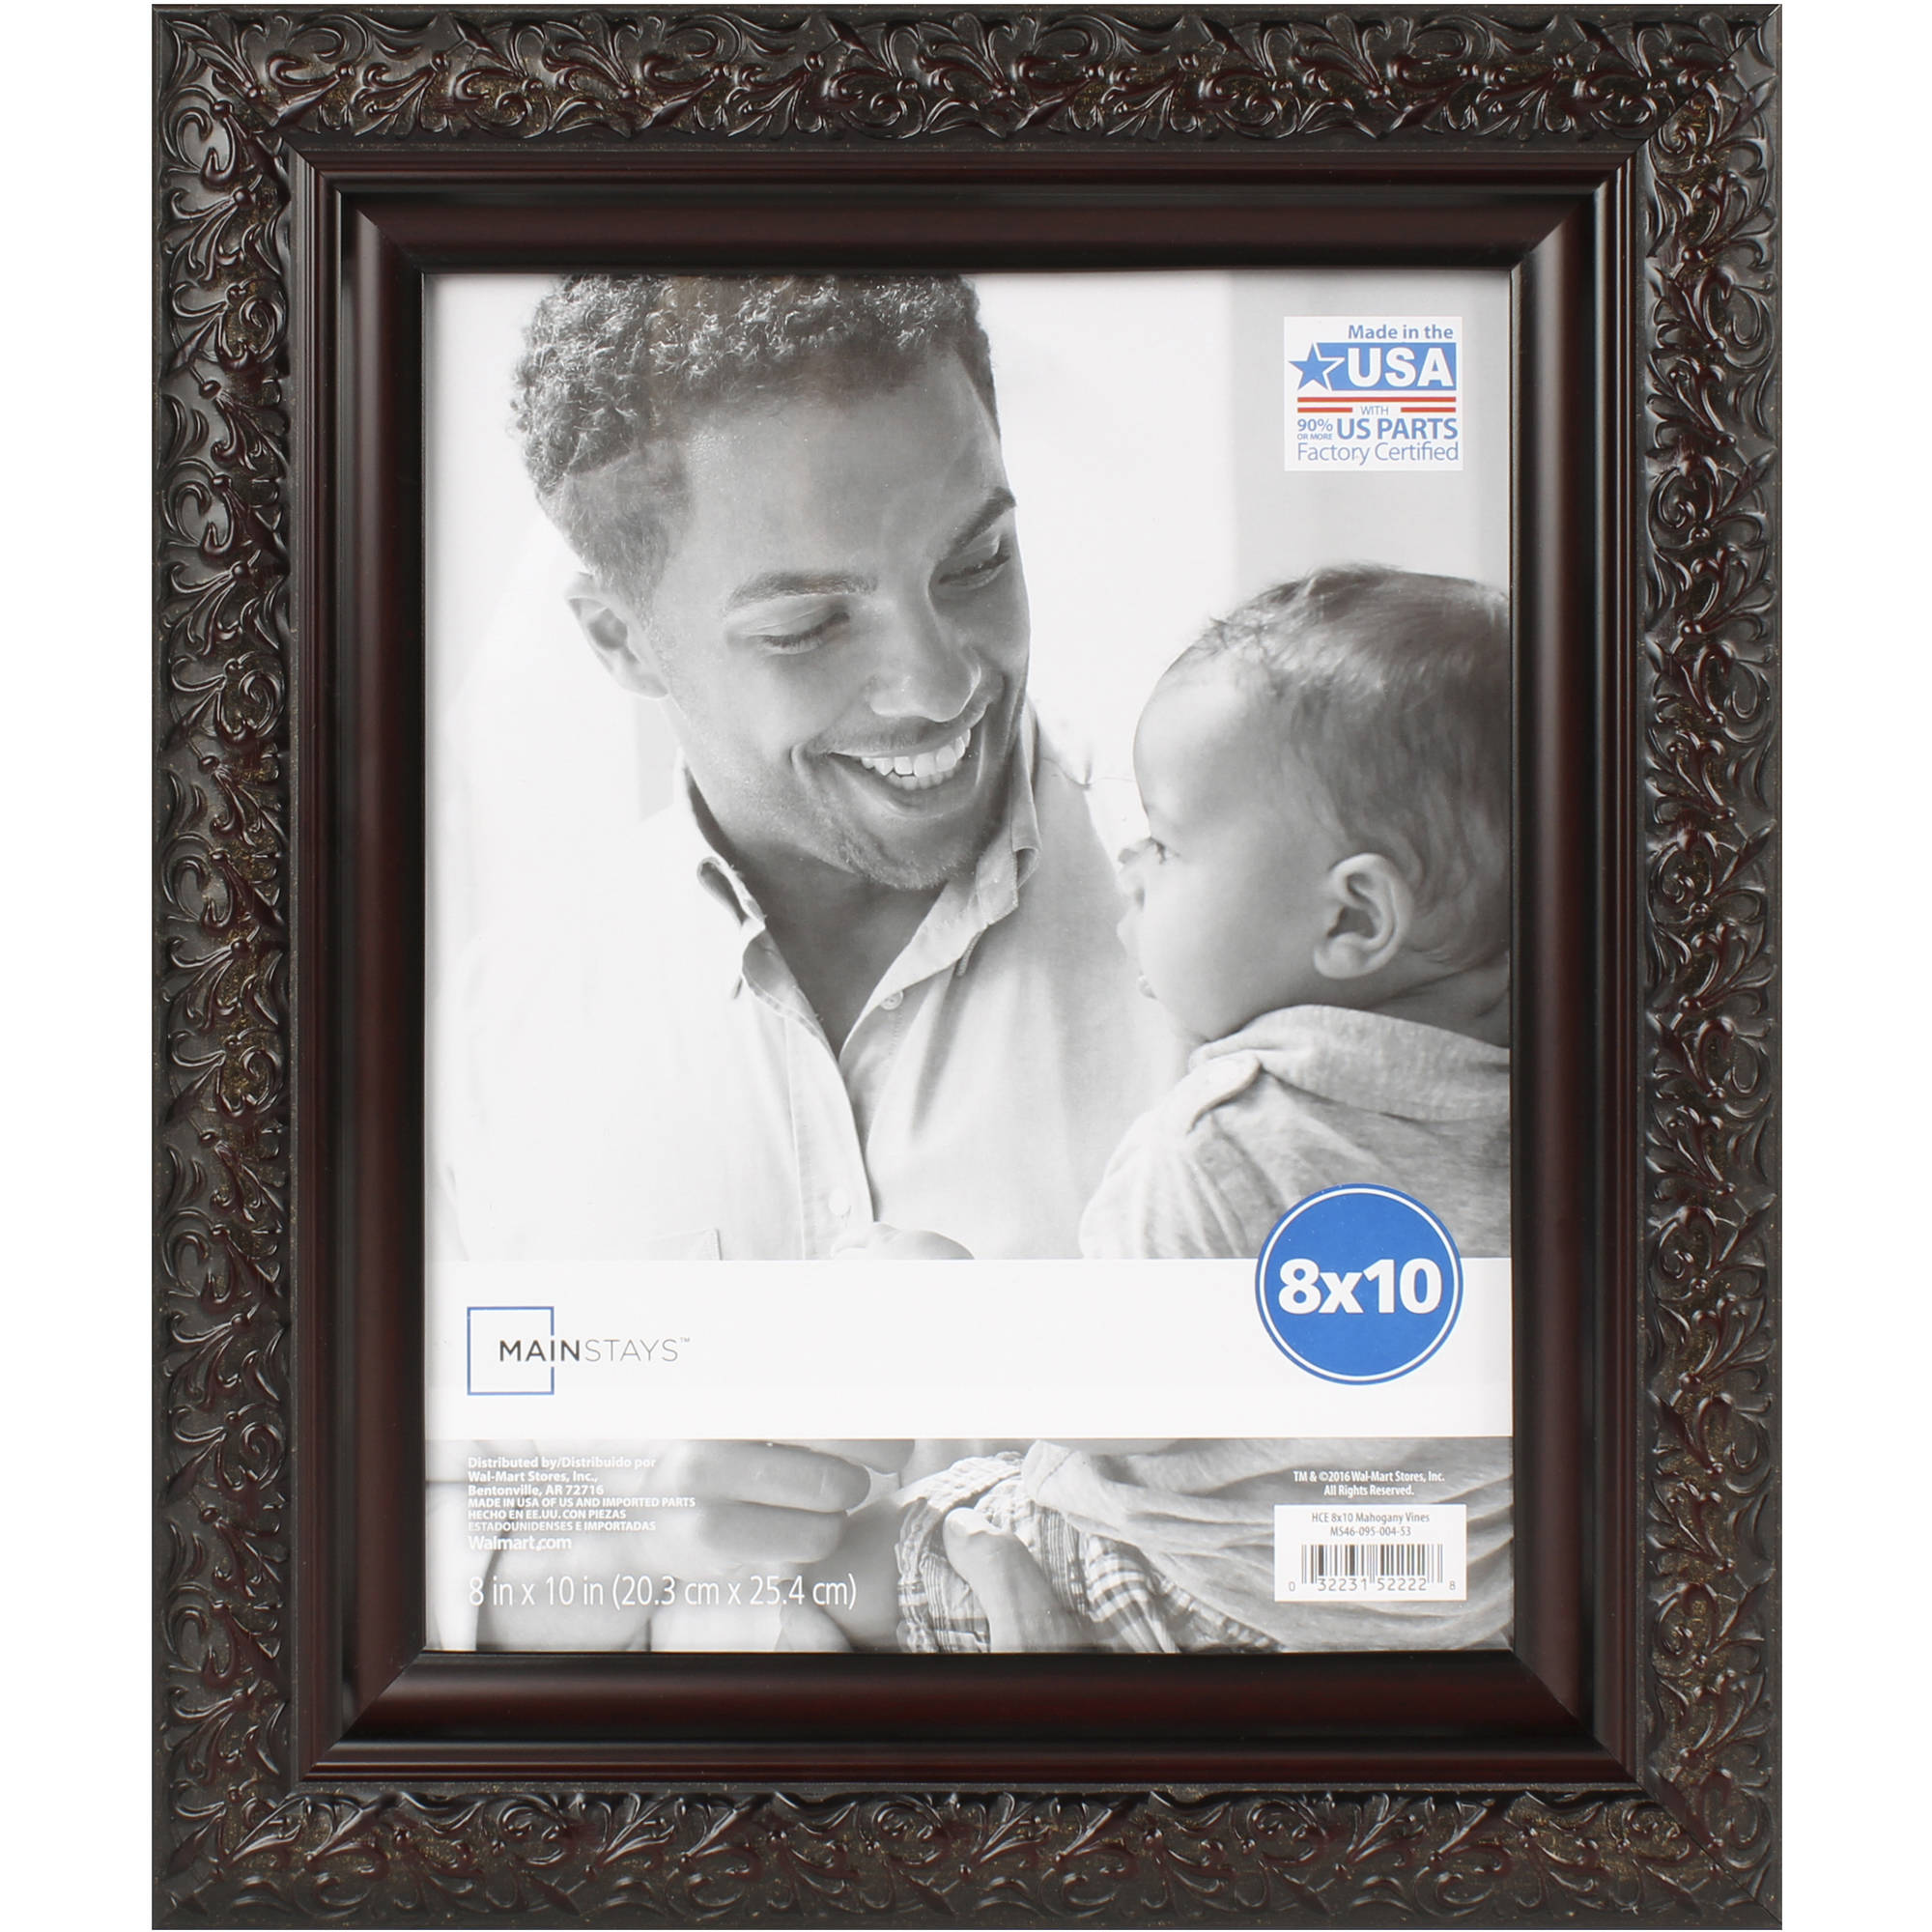 Mainstays Vines Picture Frame